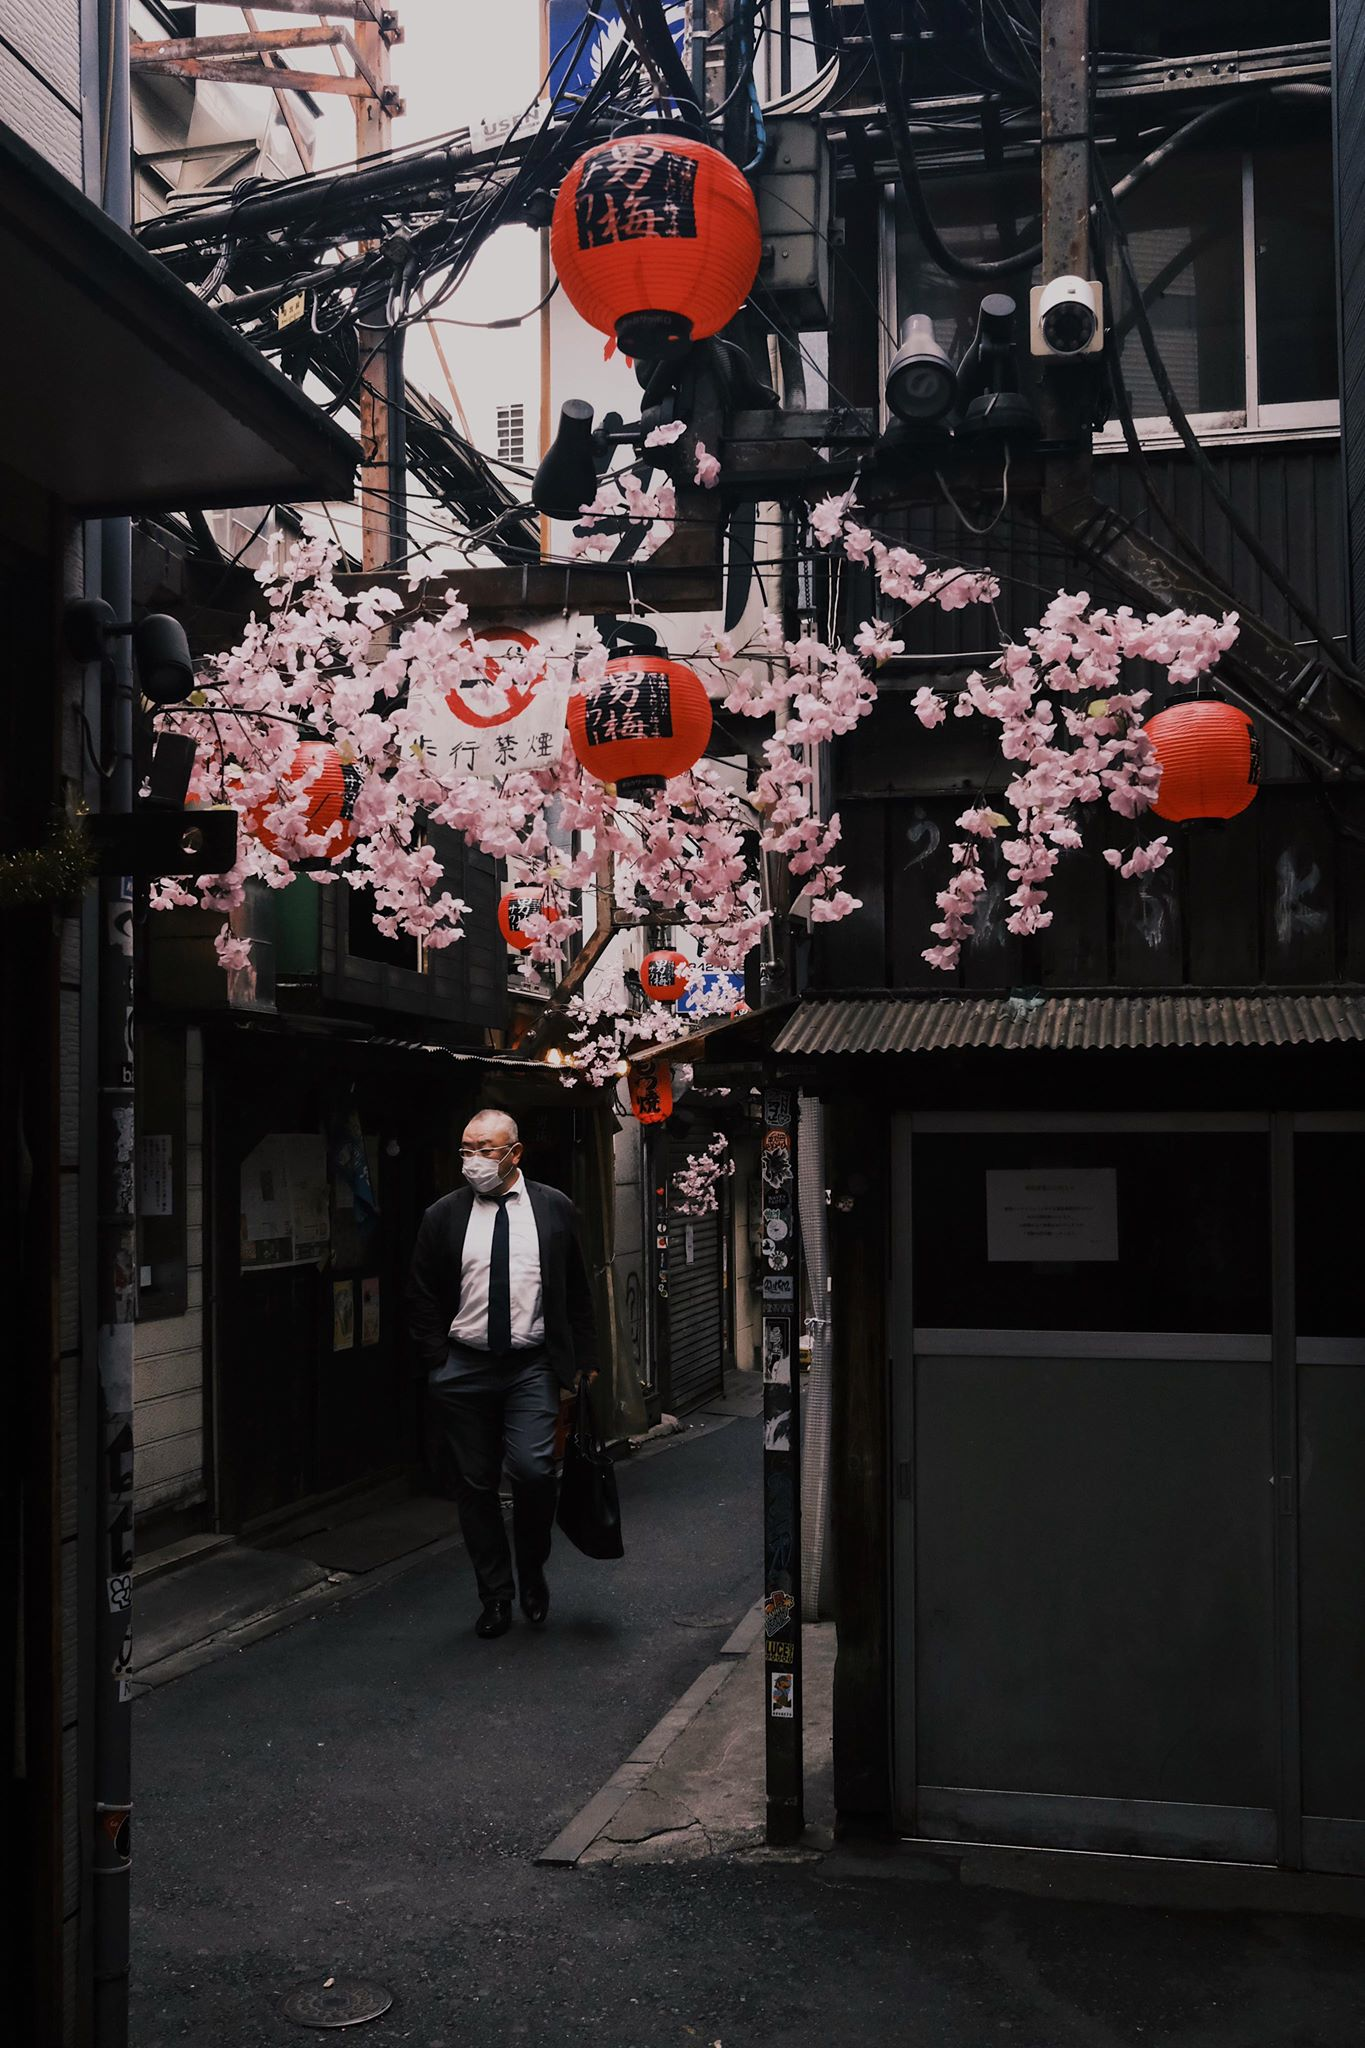 Shinjuku district in Tokyo - lanterns and blossoms hanging overhead as a man in a suit walks down a narrow street